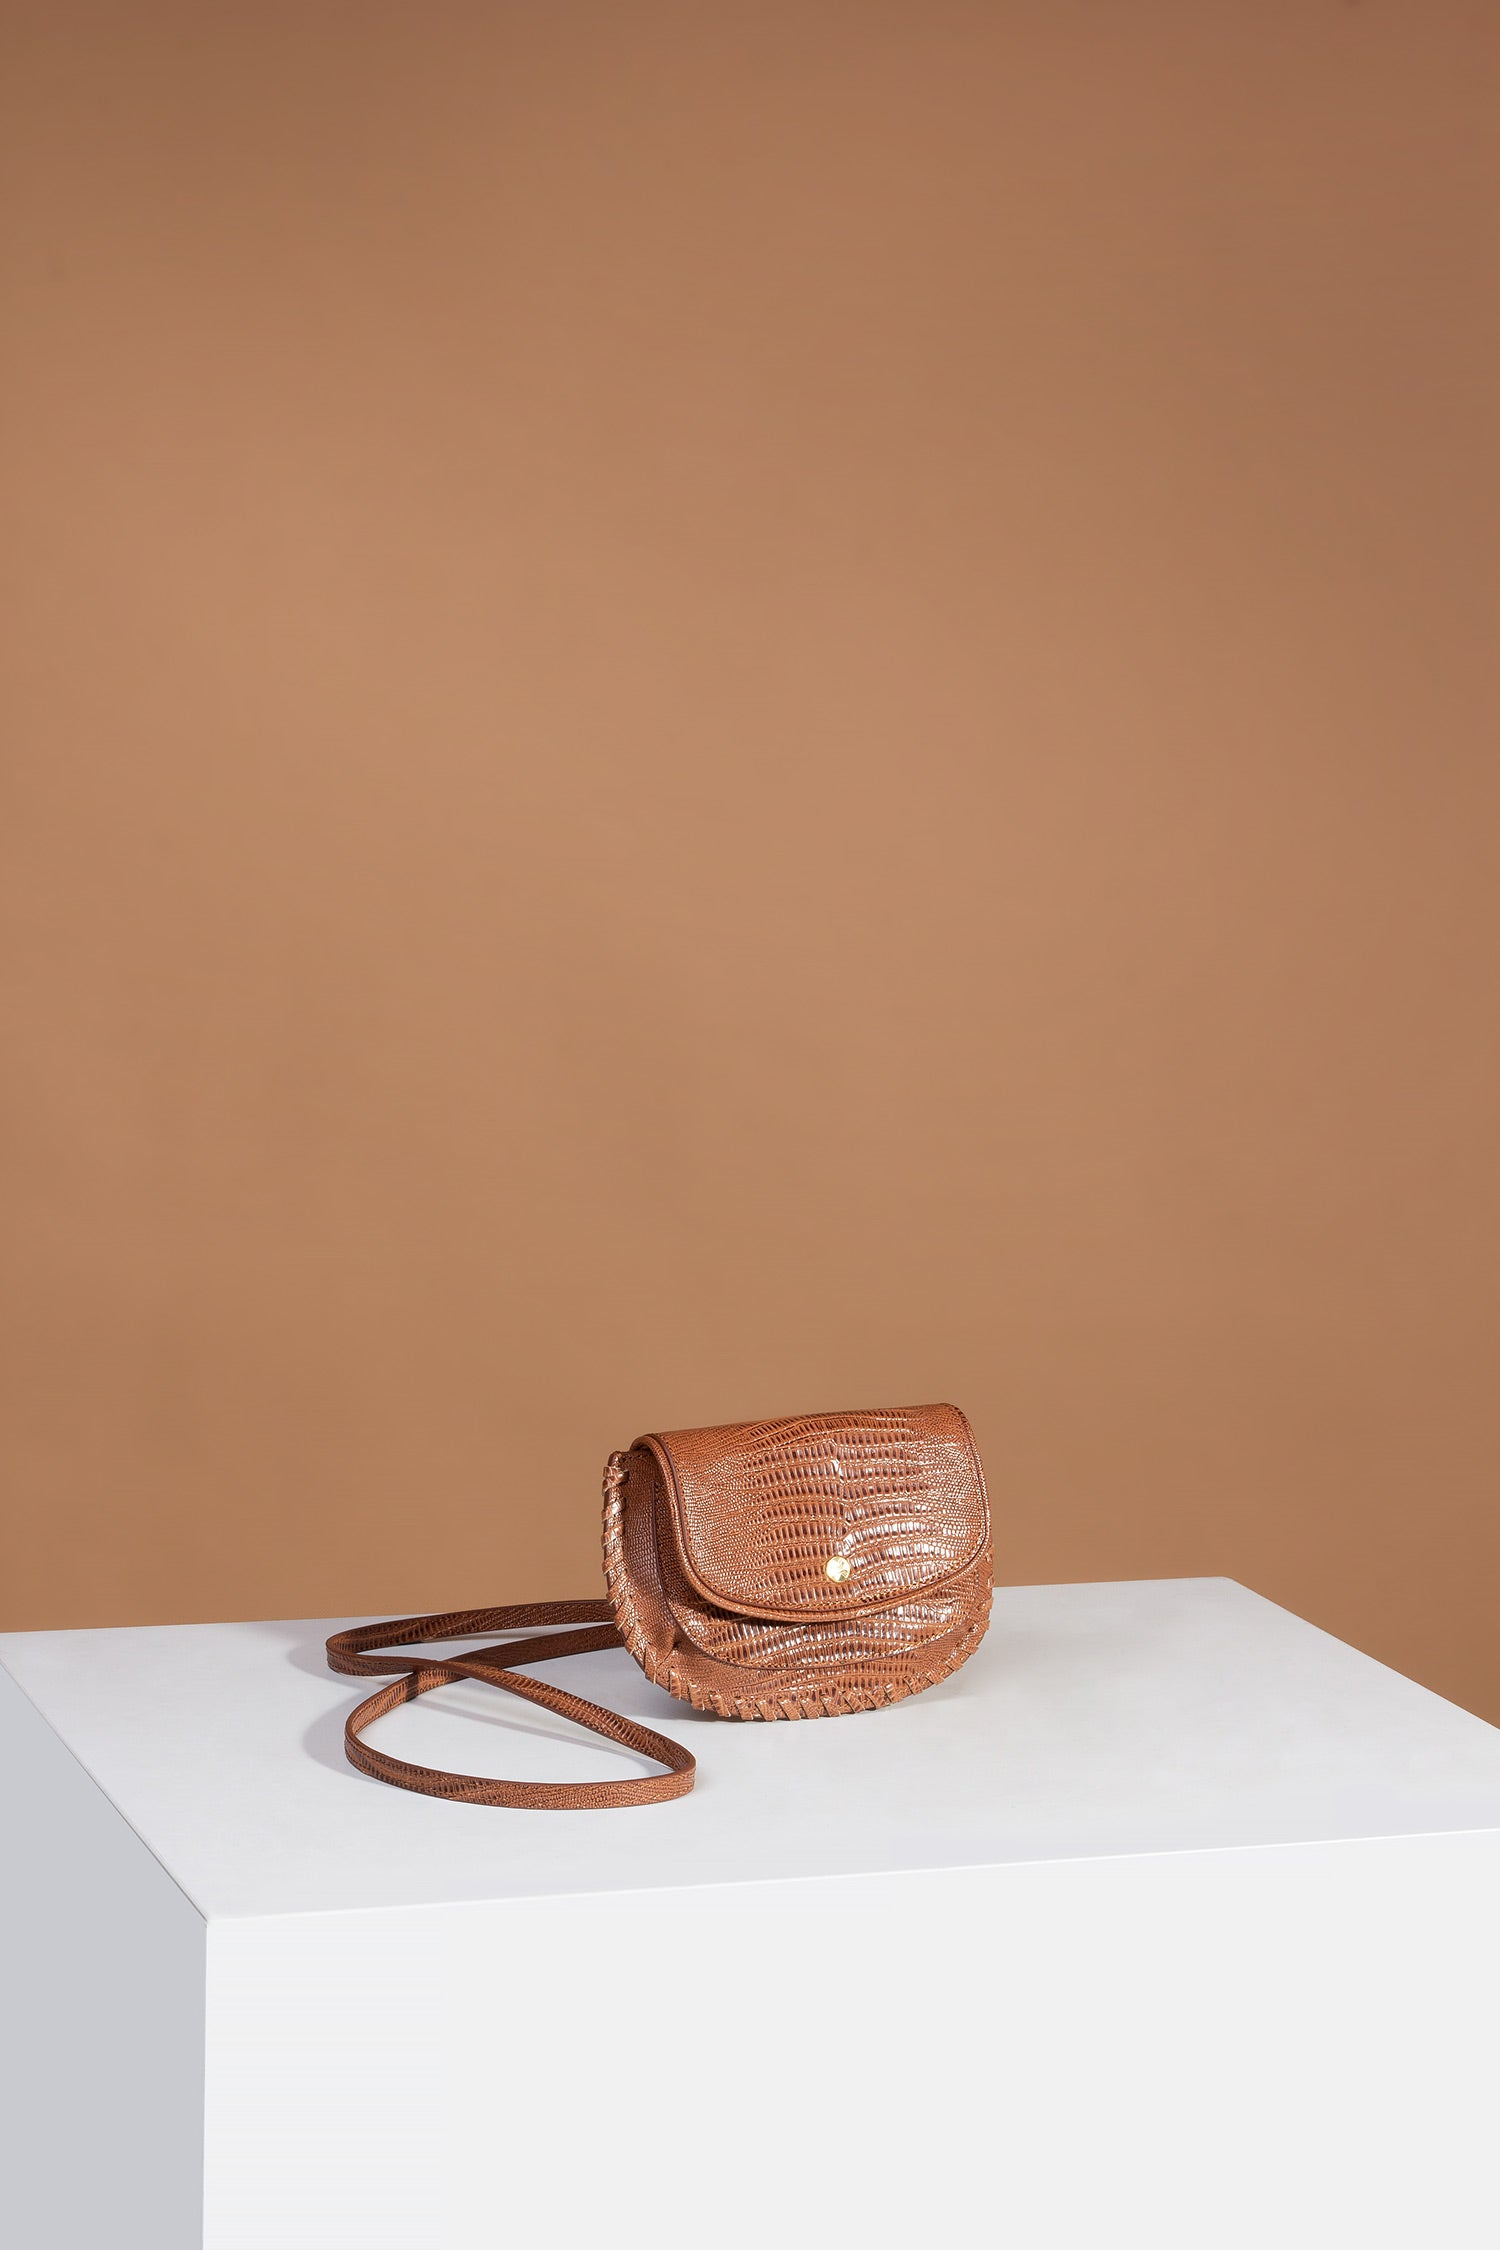 THE BRIGITTE CROSS-BODY